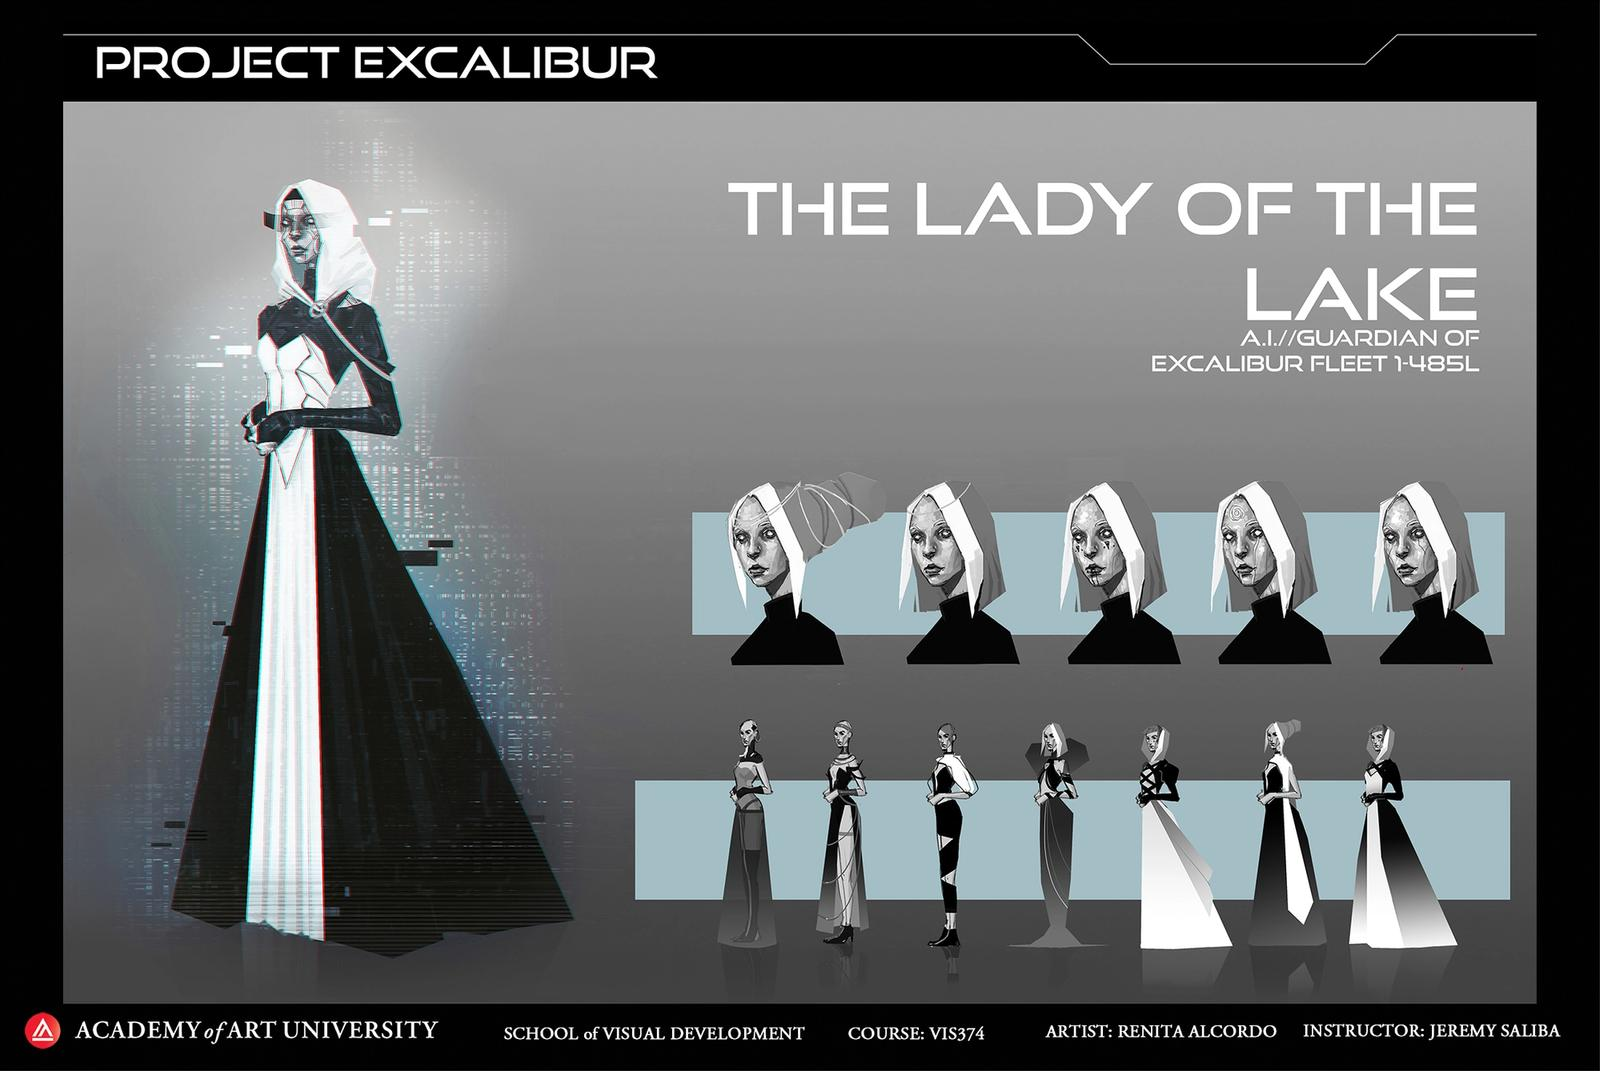 Project Excalibur: Lady of the Lake Design